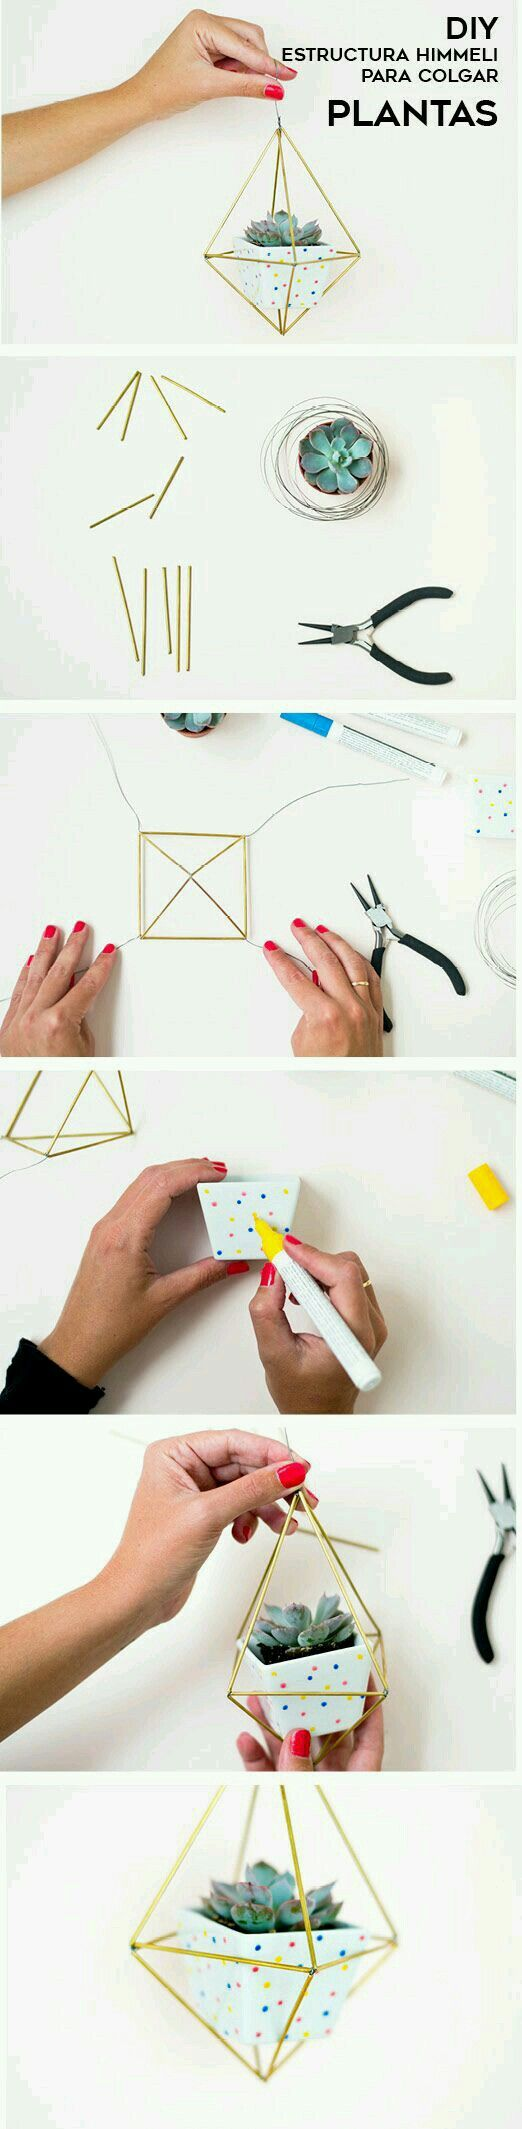 I love the geometric decor trend and this is a simple and affordable way to add it to any room!